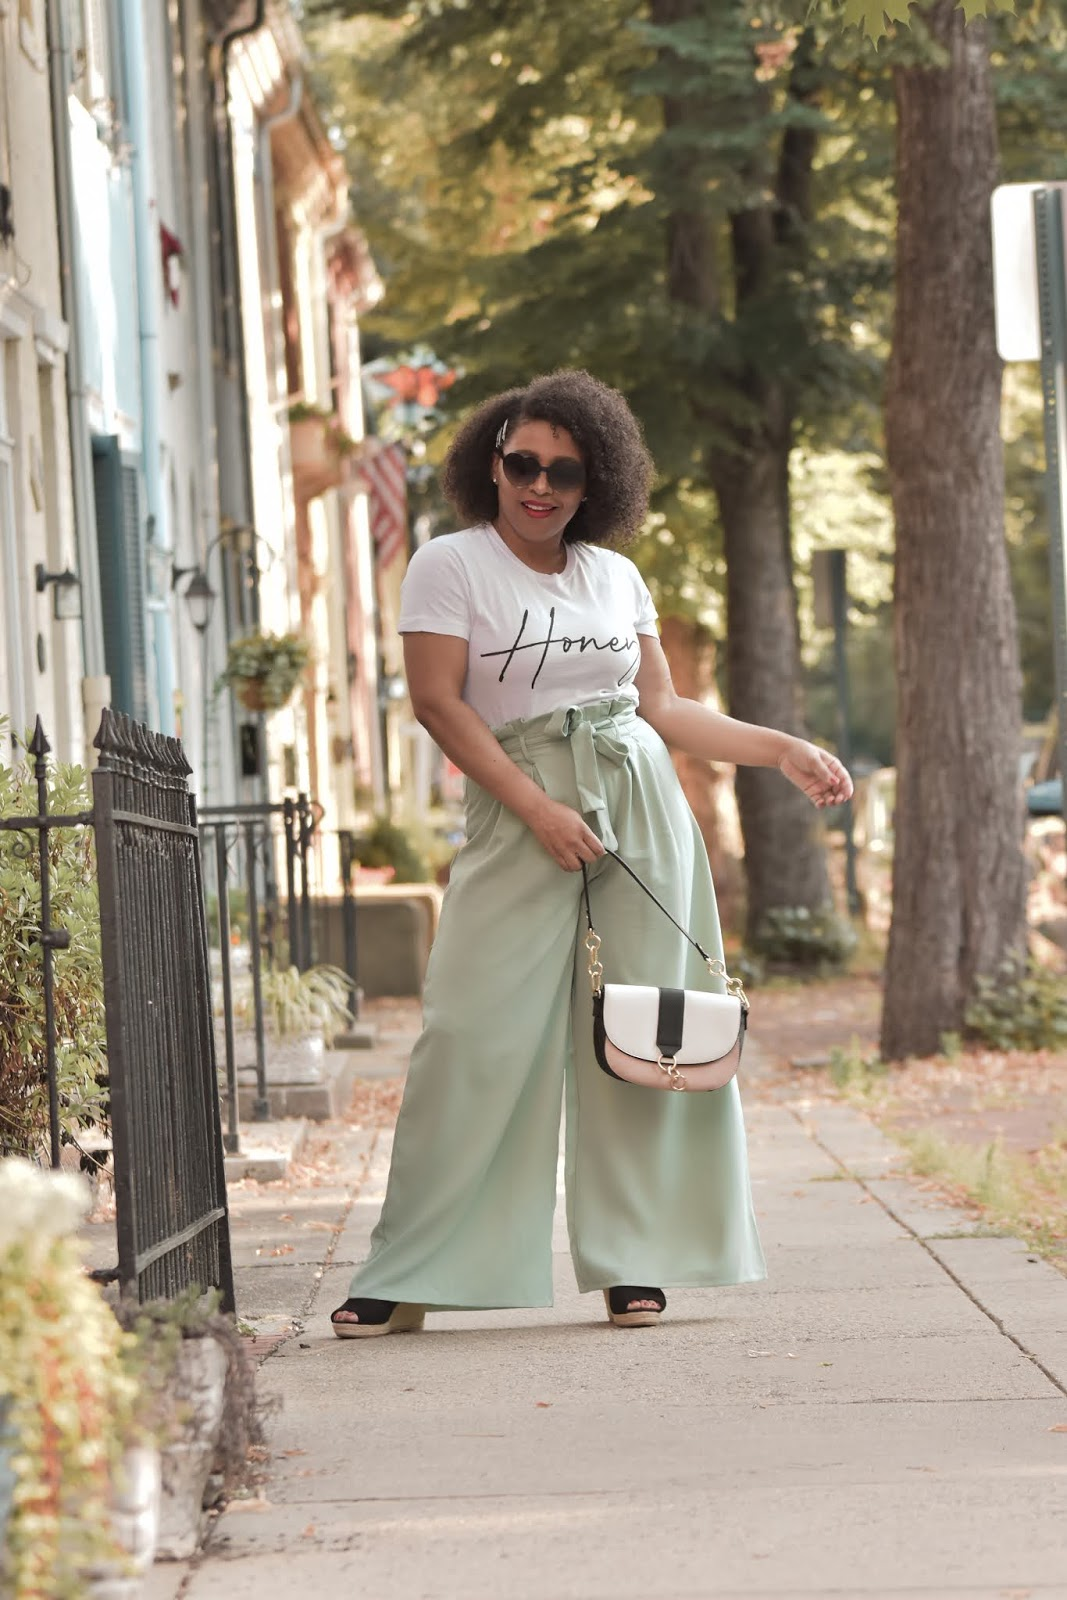 femme luxe, luxe gal, femme luxe reviews, summer outfit ideas, how to style a graphic tee, stylish mom outfits, how to style natural curly hair, pattys kloset